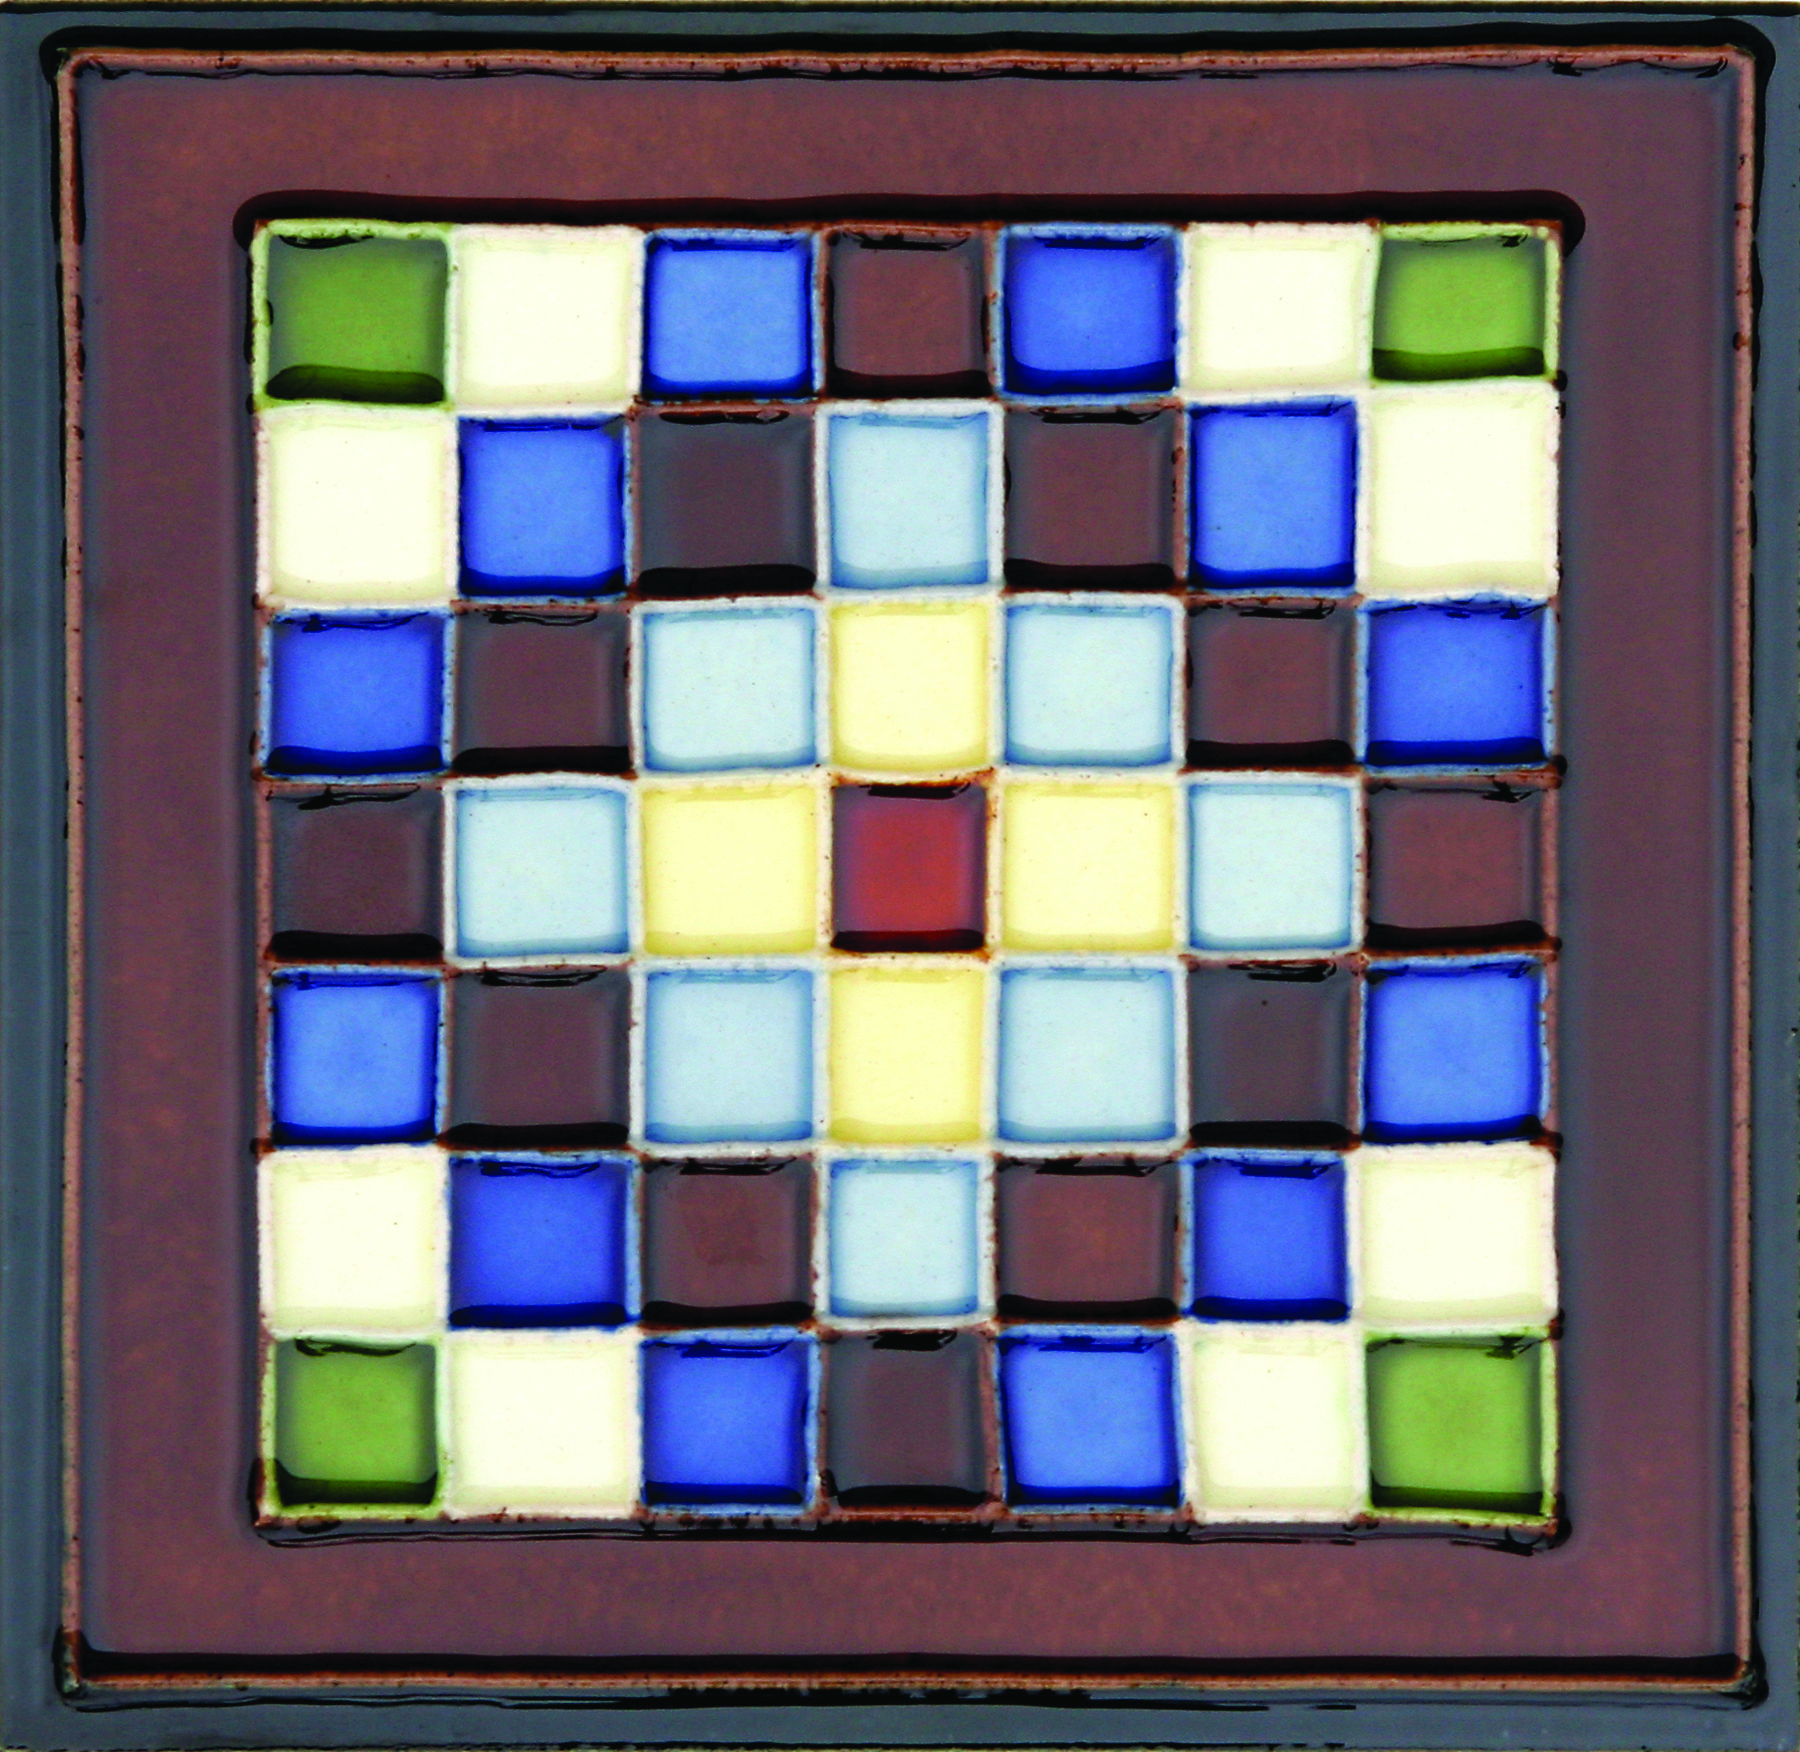 Hand-Painted Ceramic Glazed Wall Tile in Cuadros Hand-Painted Ceramic Glazed Wall Tile in Cuadros 0